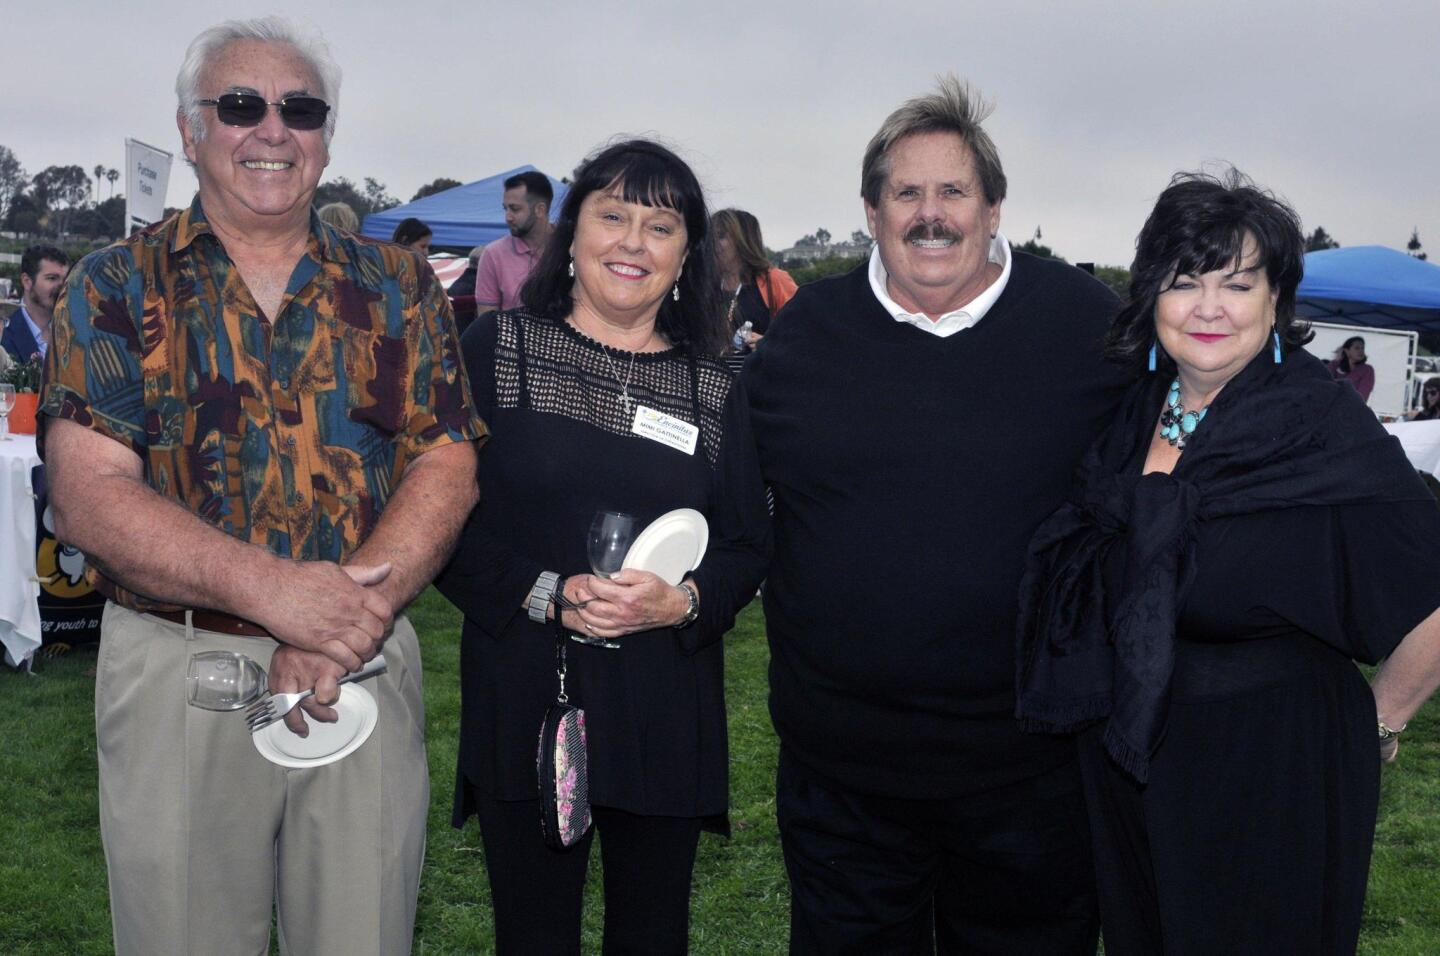 Encinitas Chamber of Commerce CEO Bob Gattinella, chamber administrator Mimi Gattinella, Encinitas council member Mark and Mo Muir